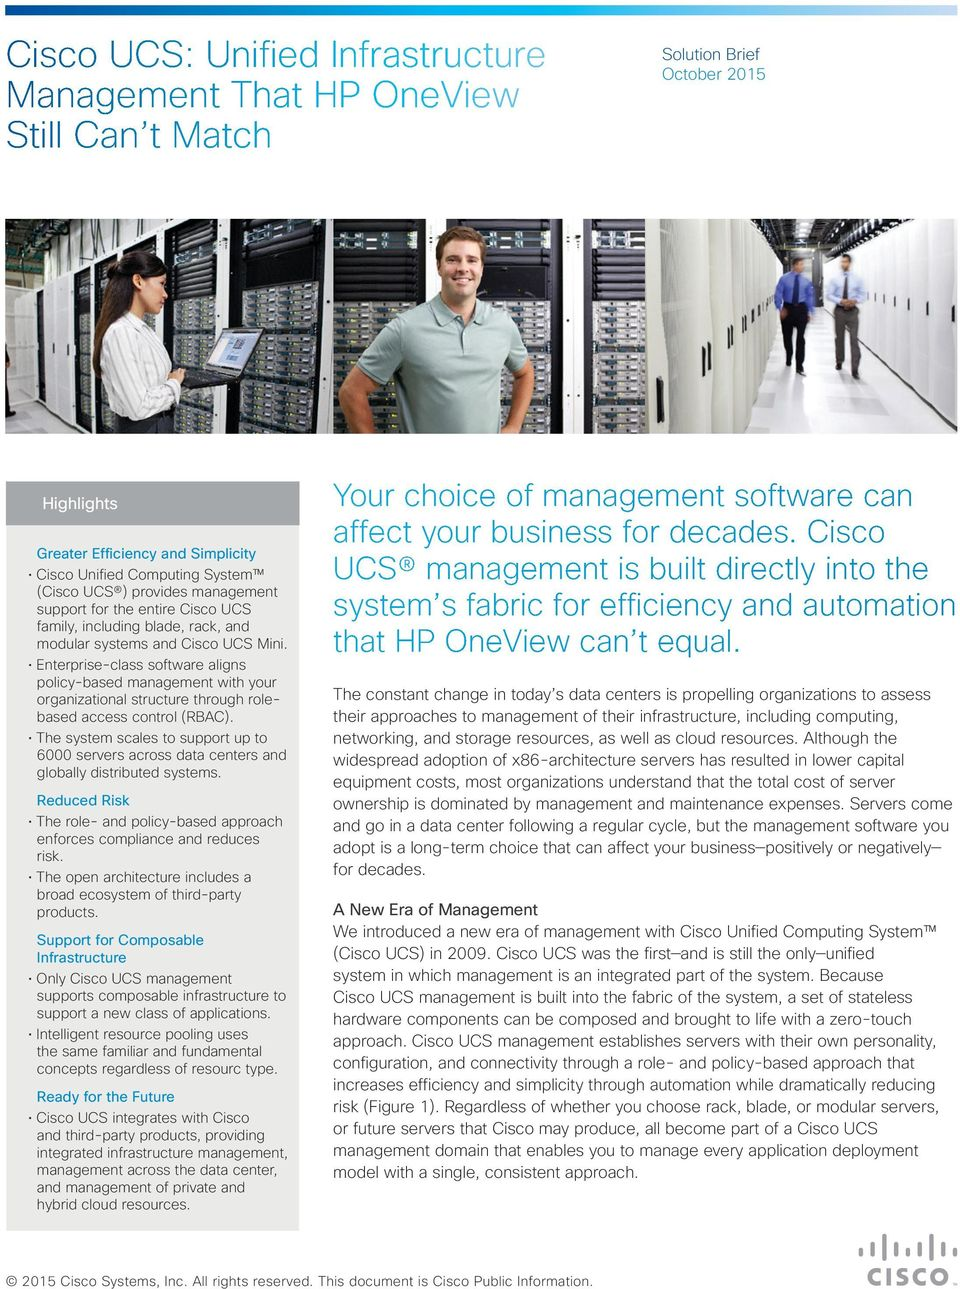 Cisco UCS: Unified Infrastructure Management That HP OneView